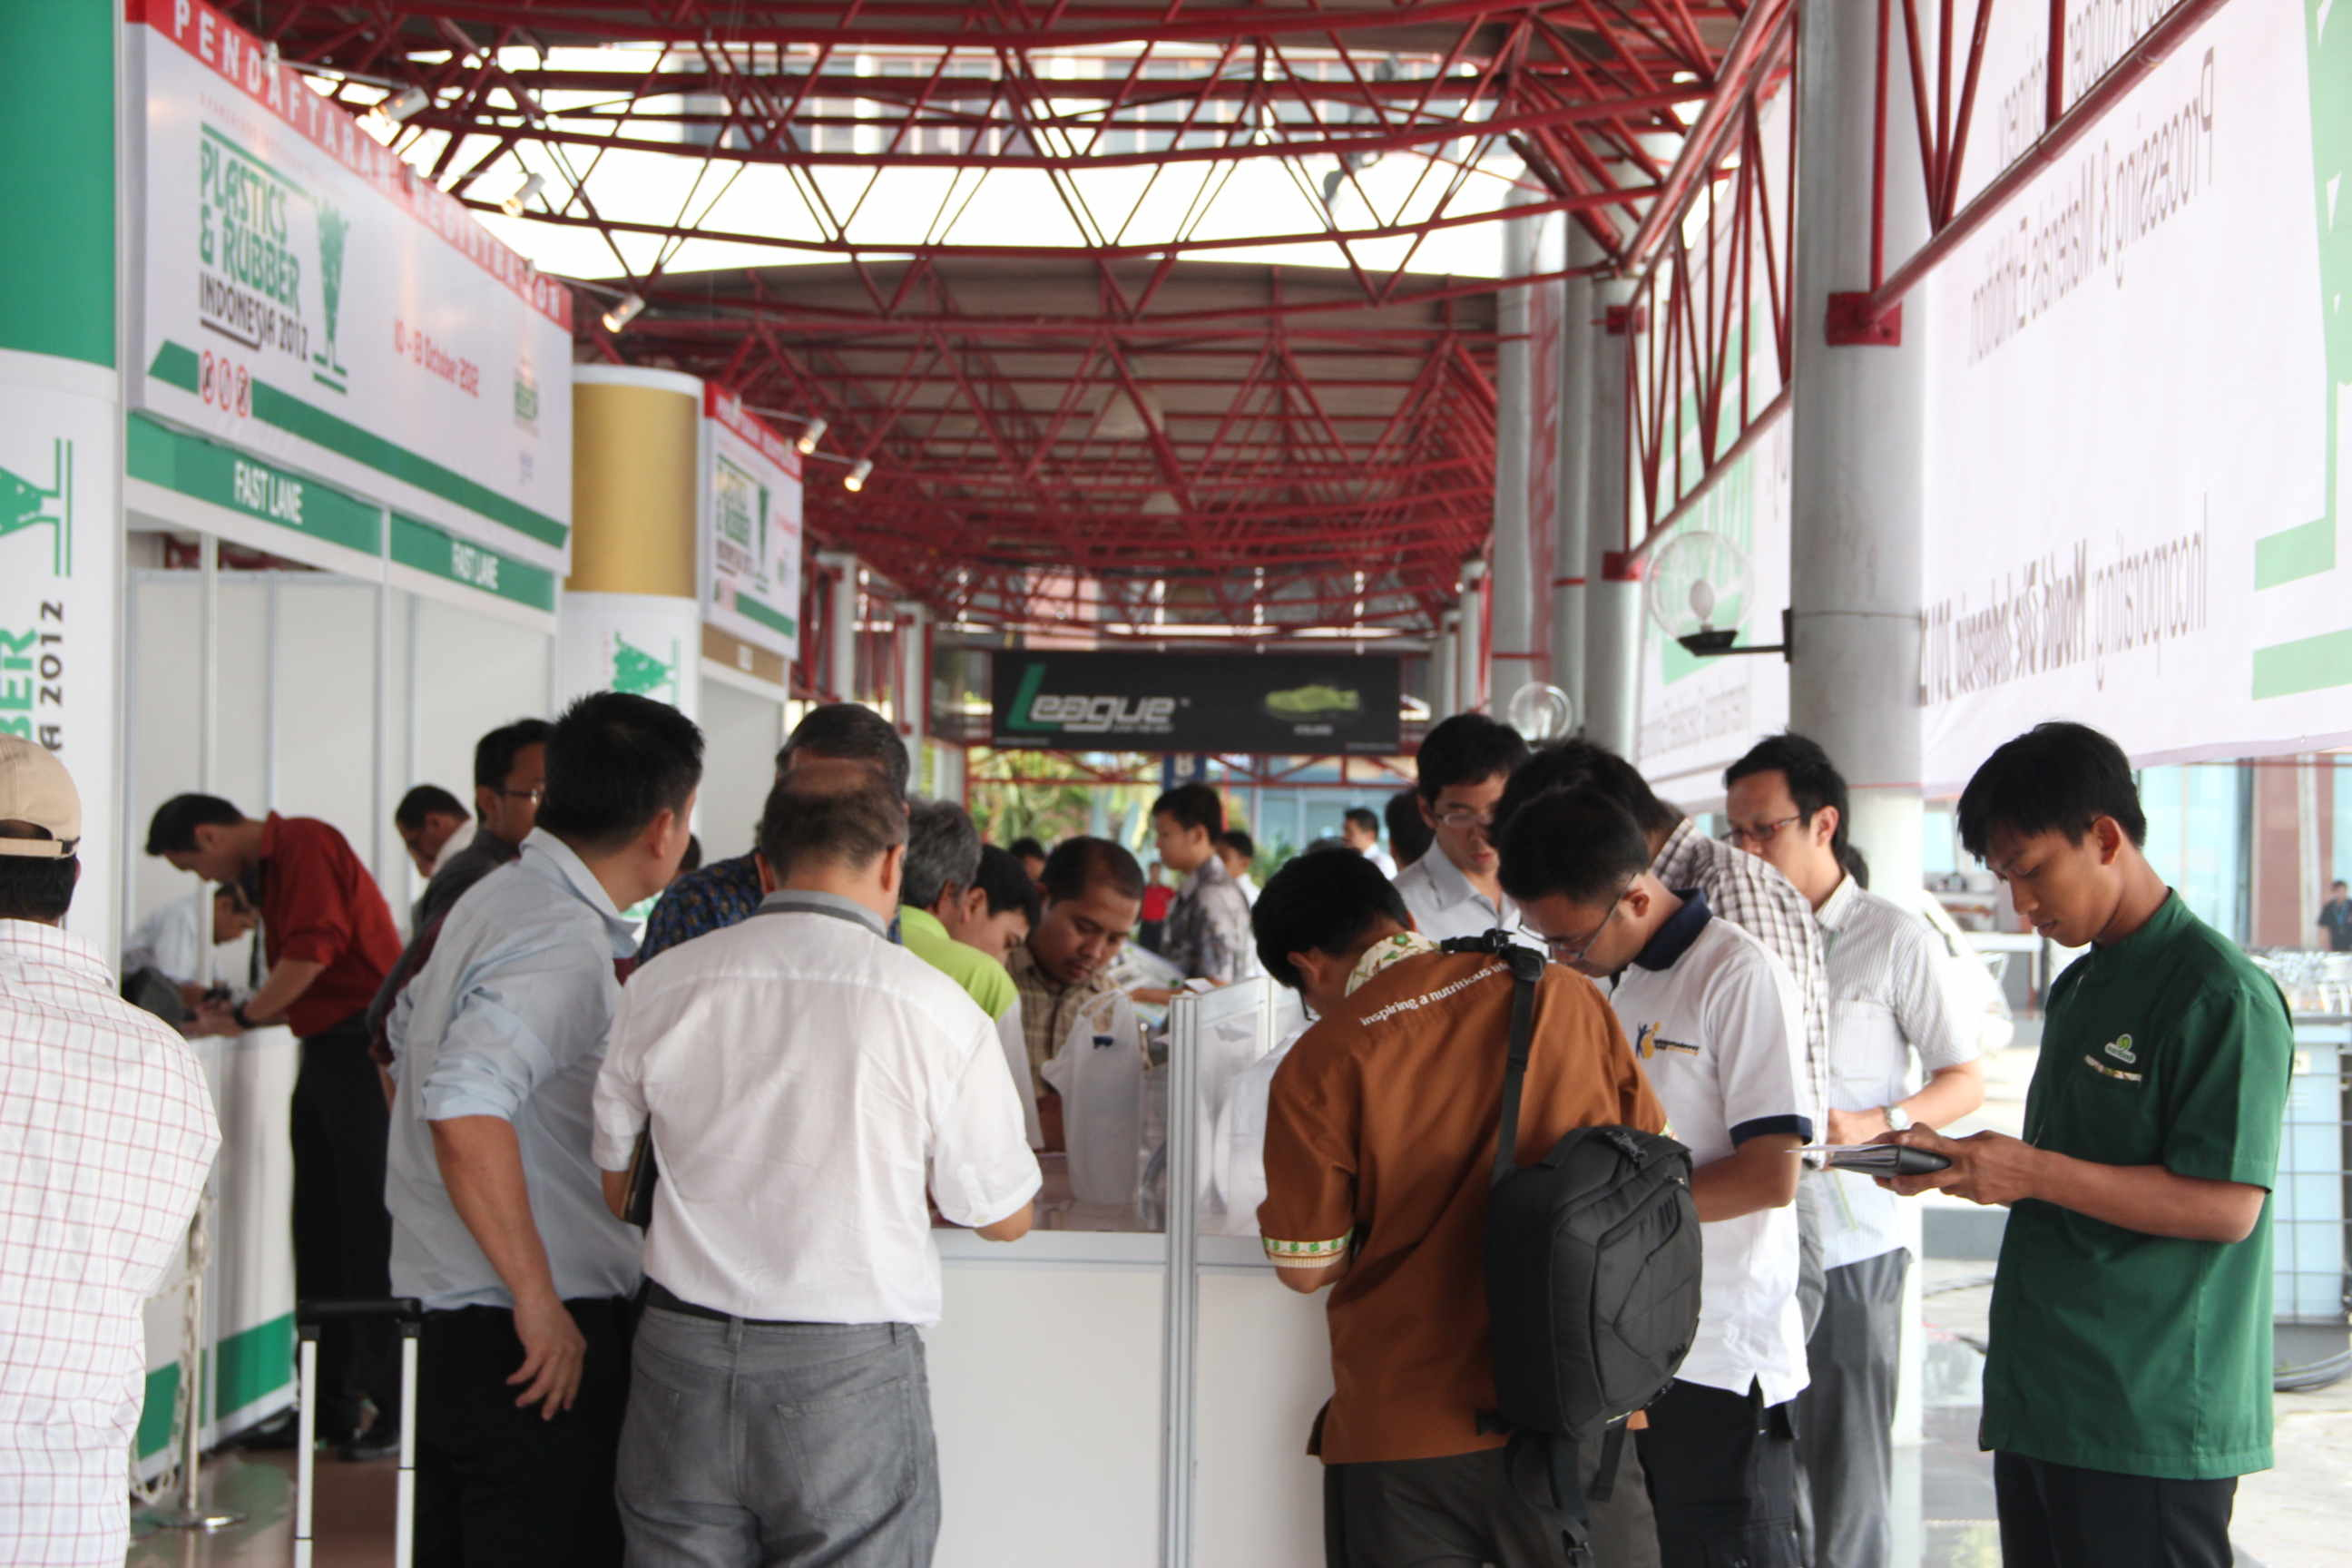 Many visitor at the registration desk